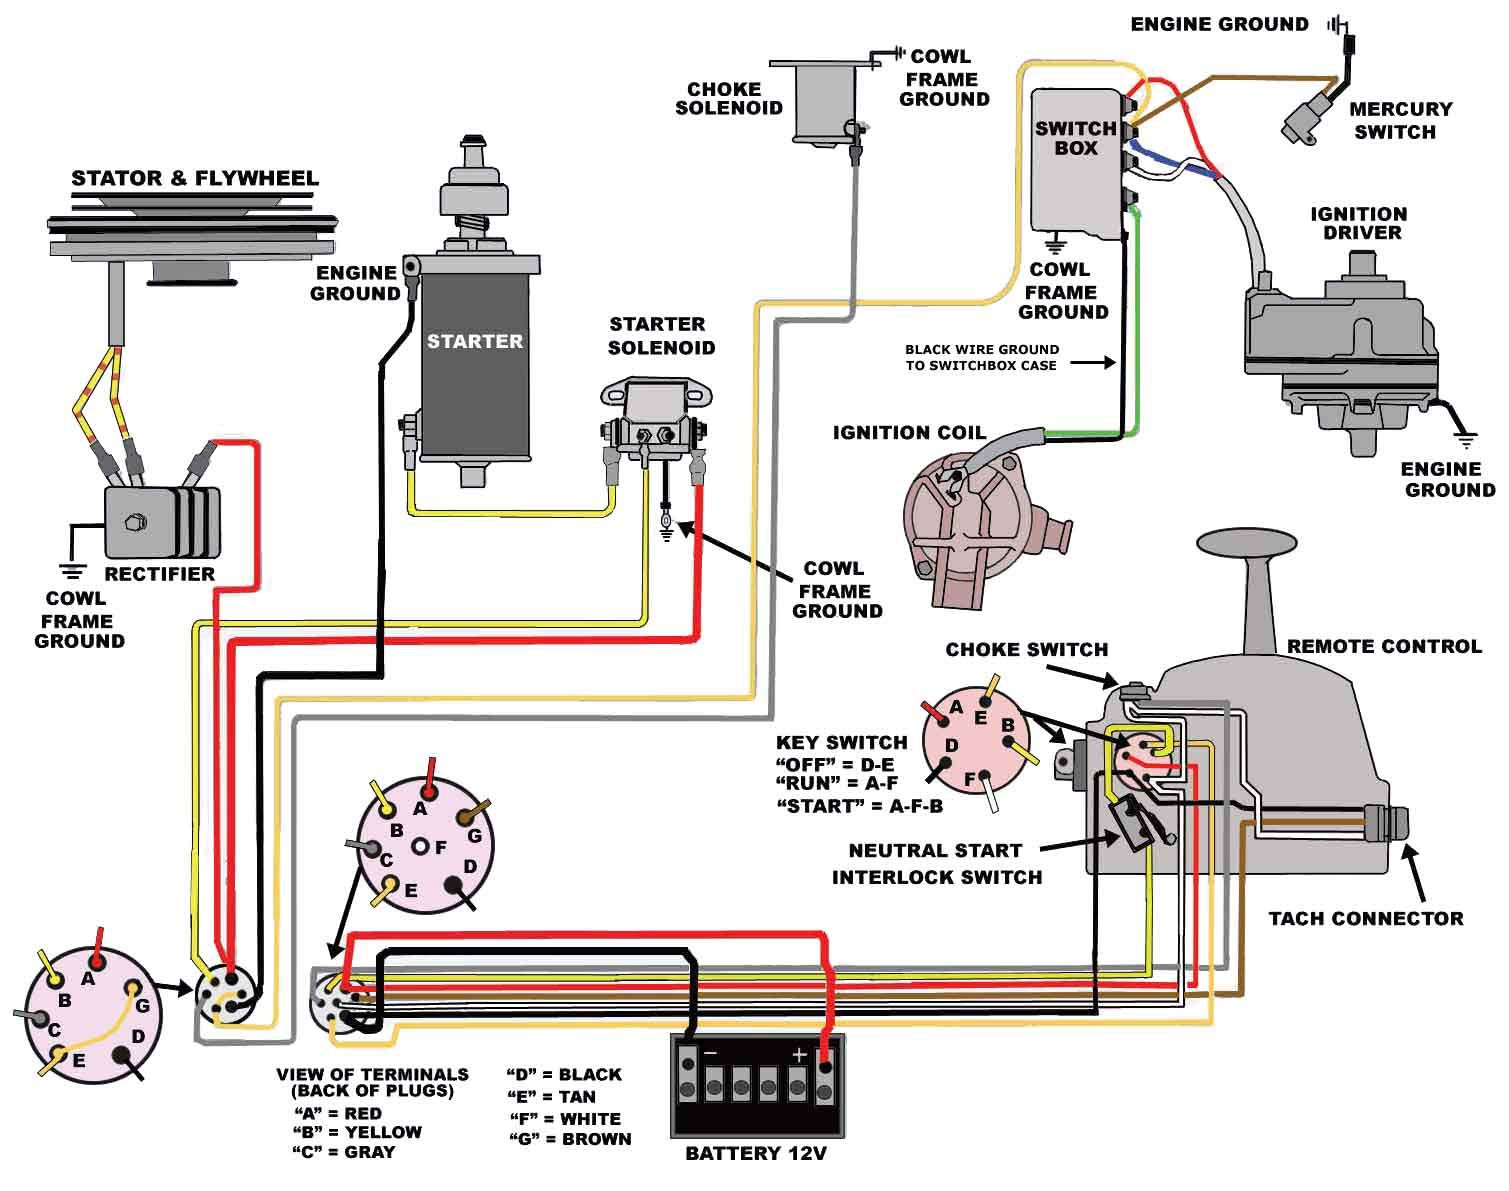 13cfb2d962bcd0c03103625817b7d51d mercury outboard wiring diagram diagram pinterest mercury  at edmiracle.co